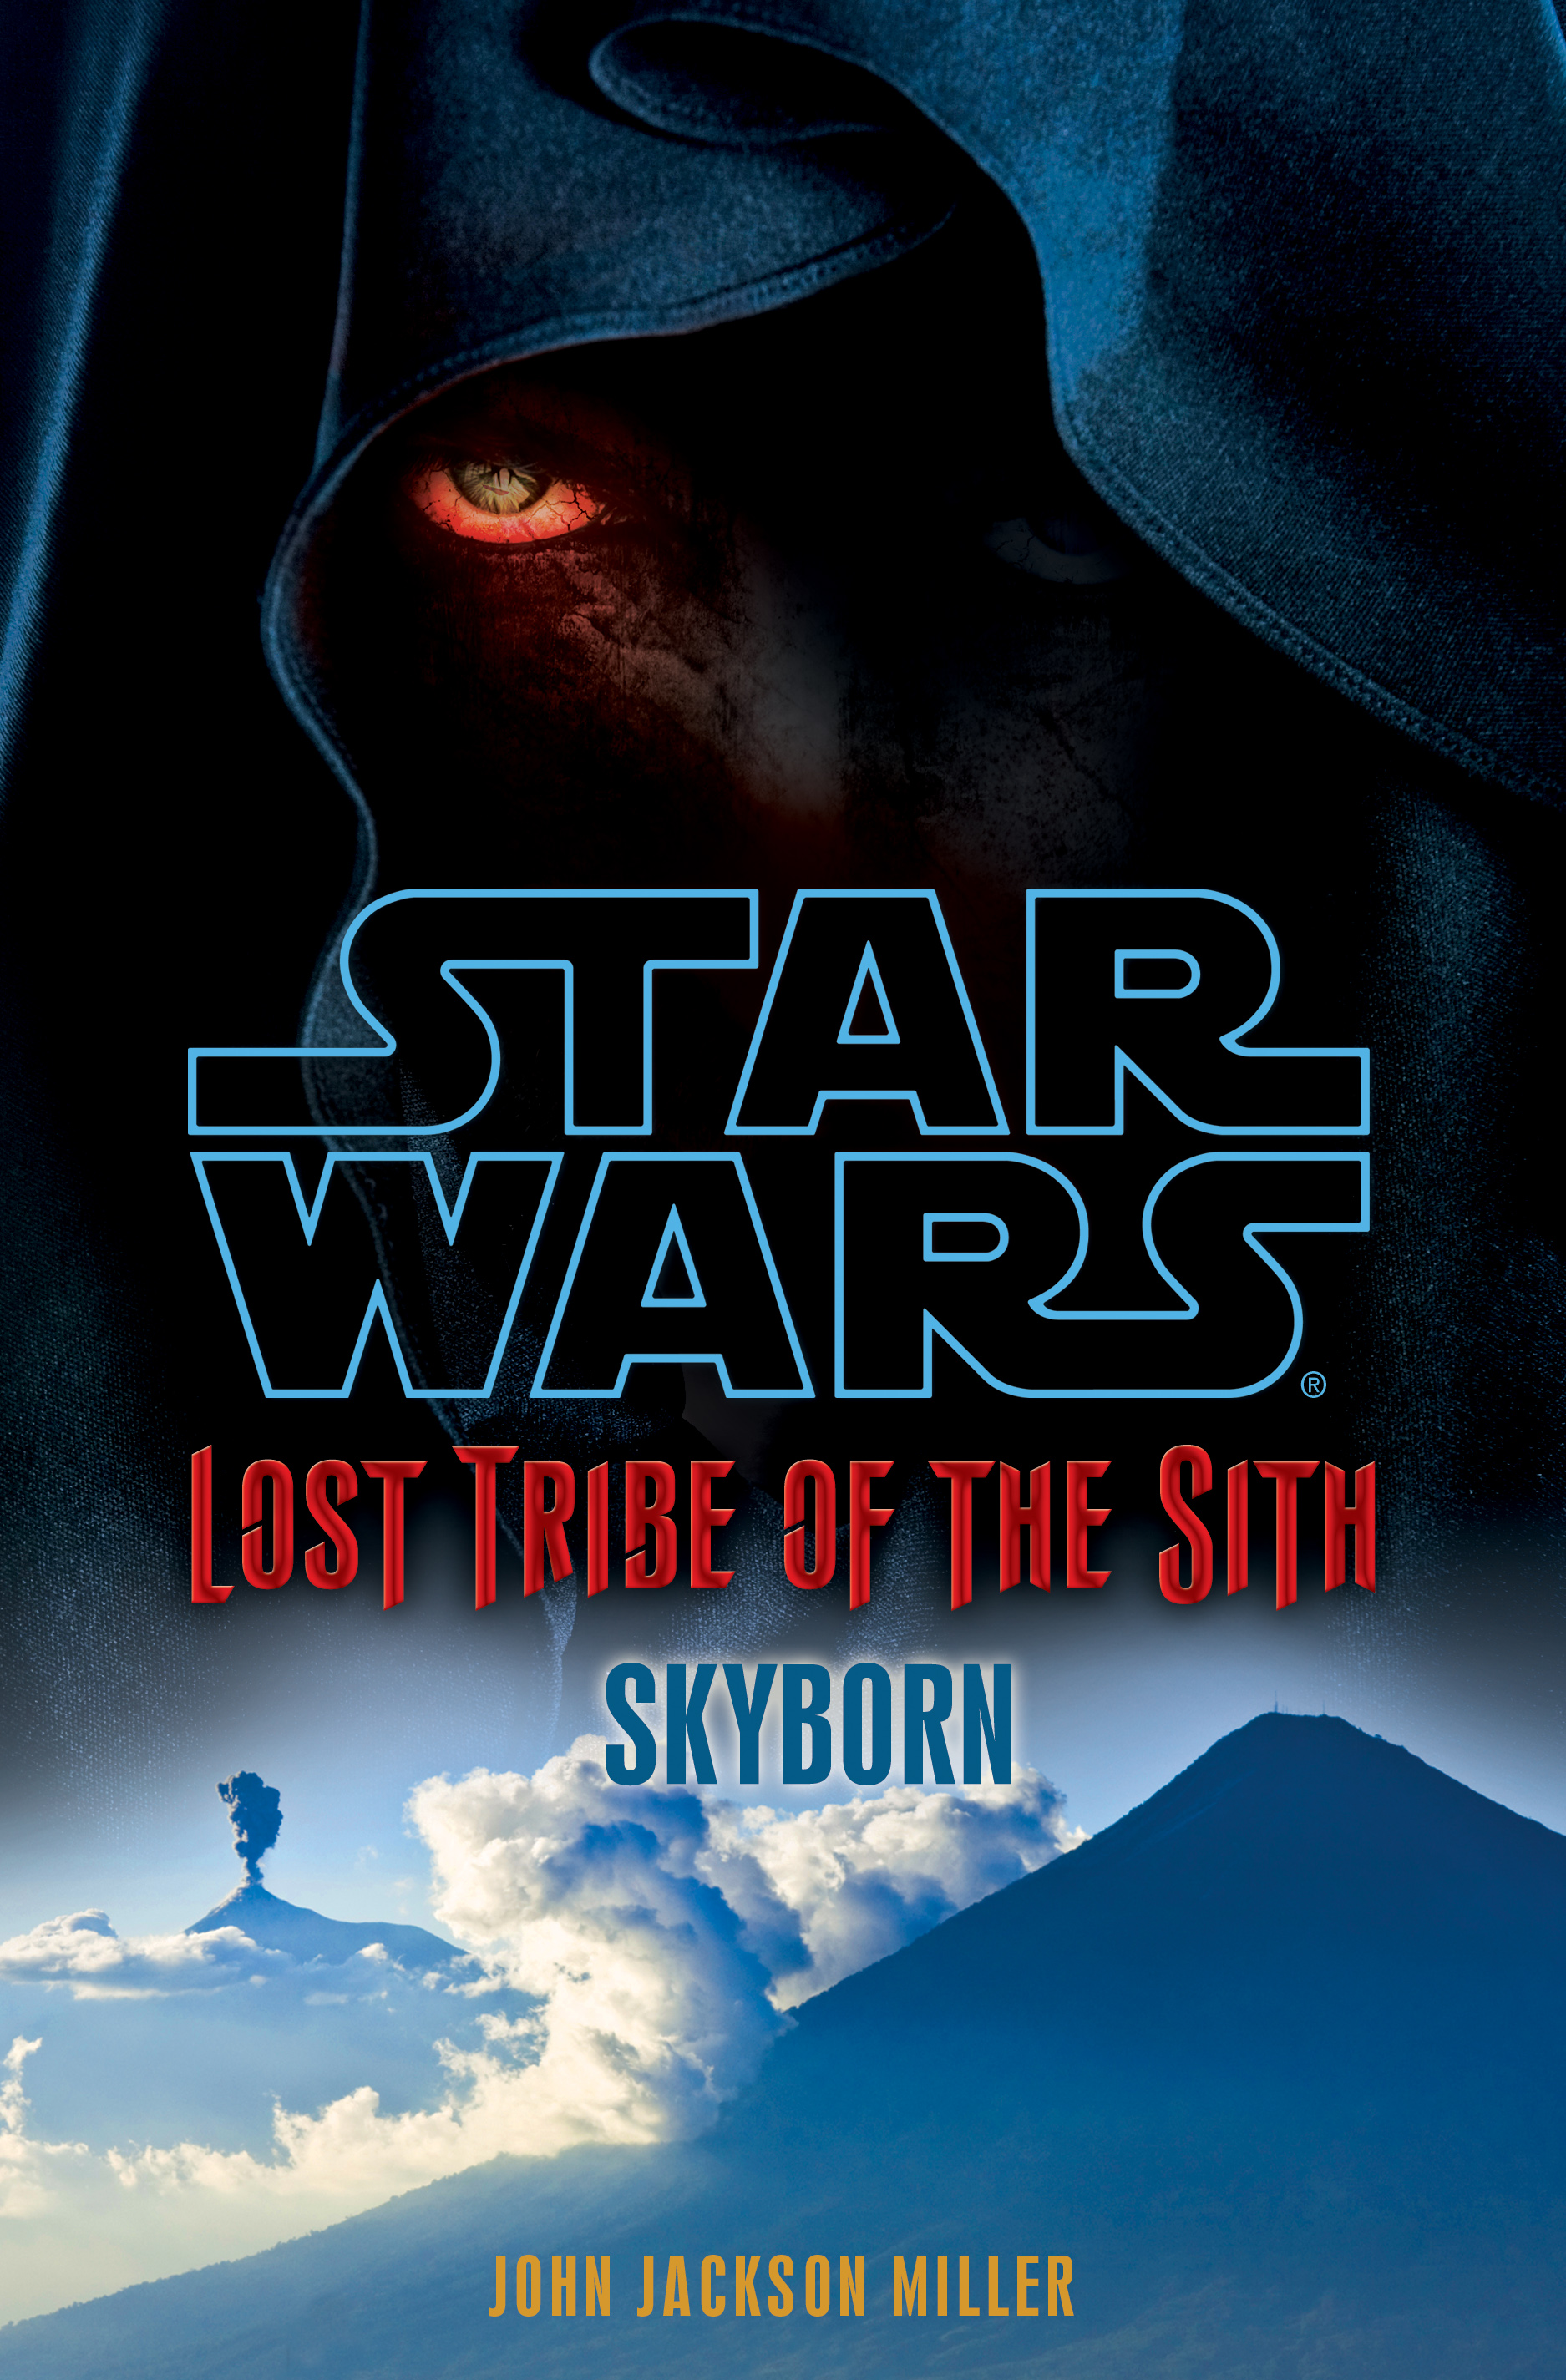 Lost Tribe of the Sith: Skyborn